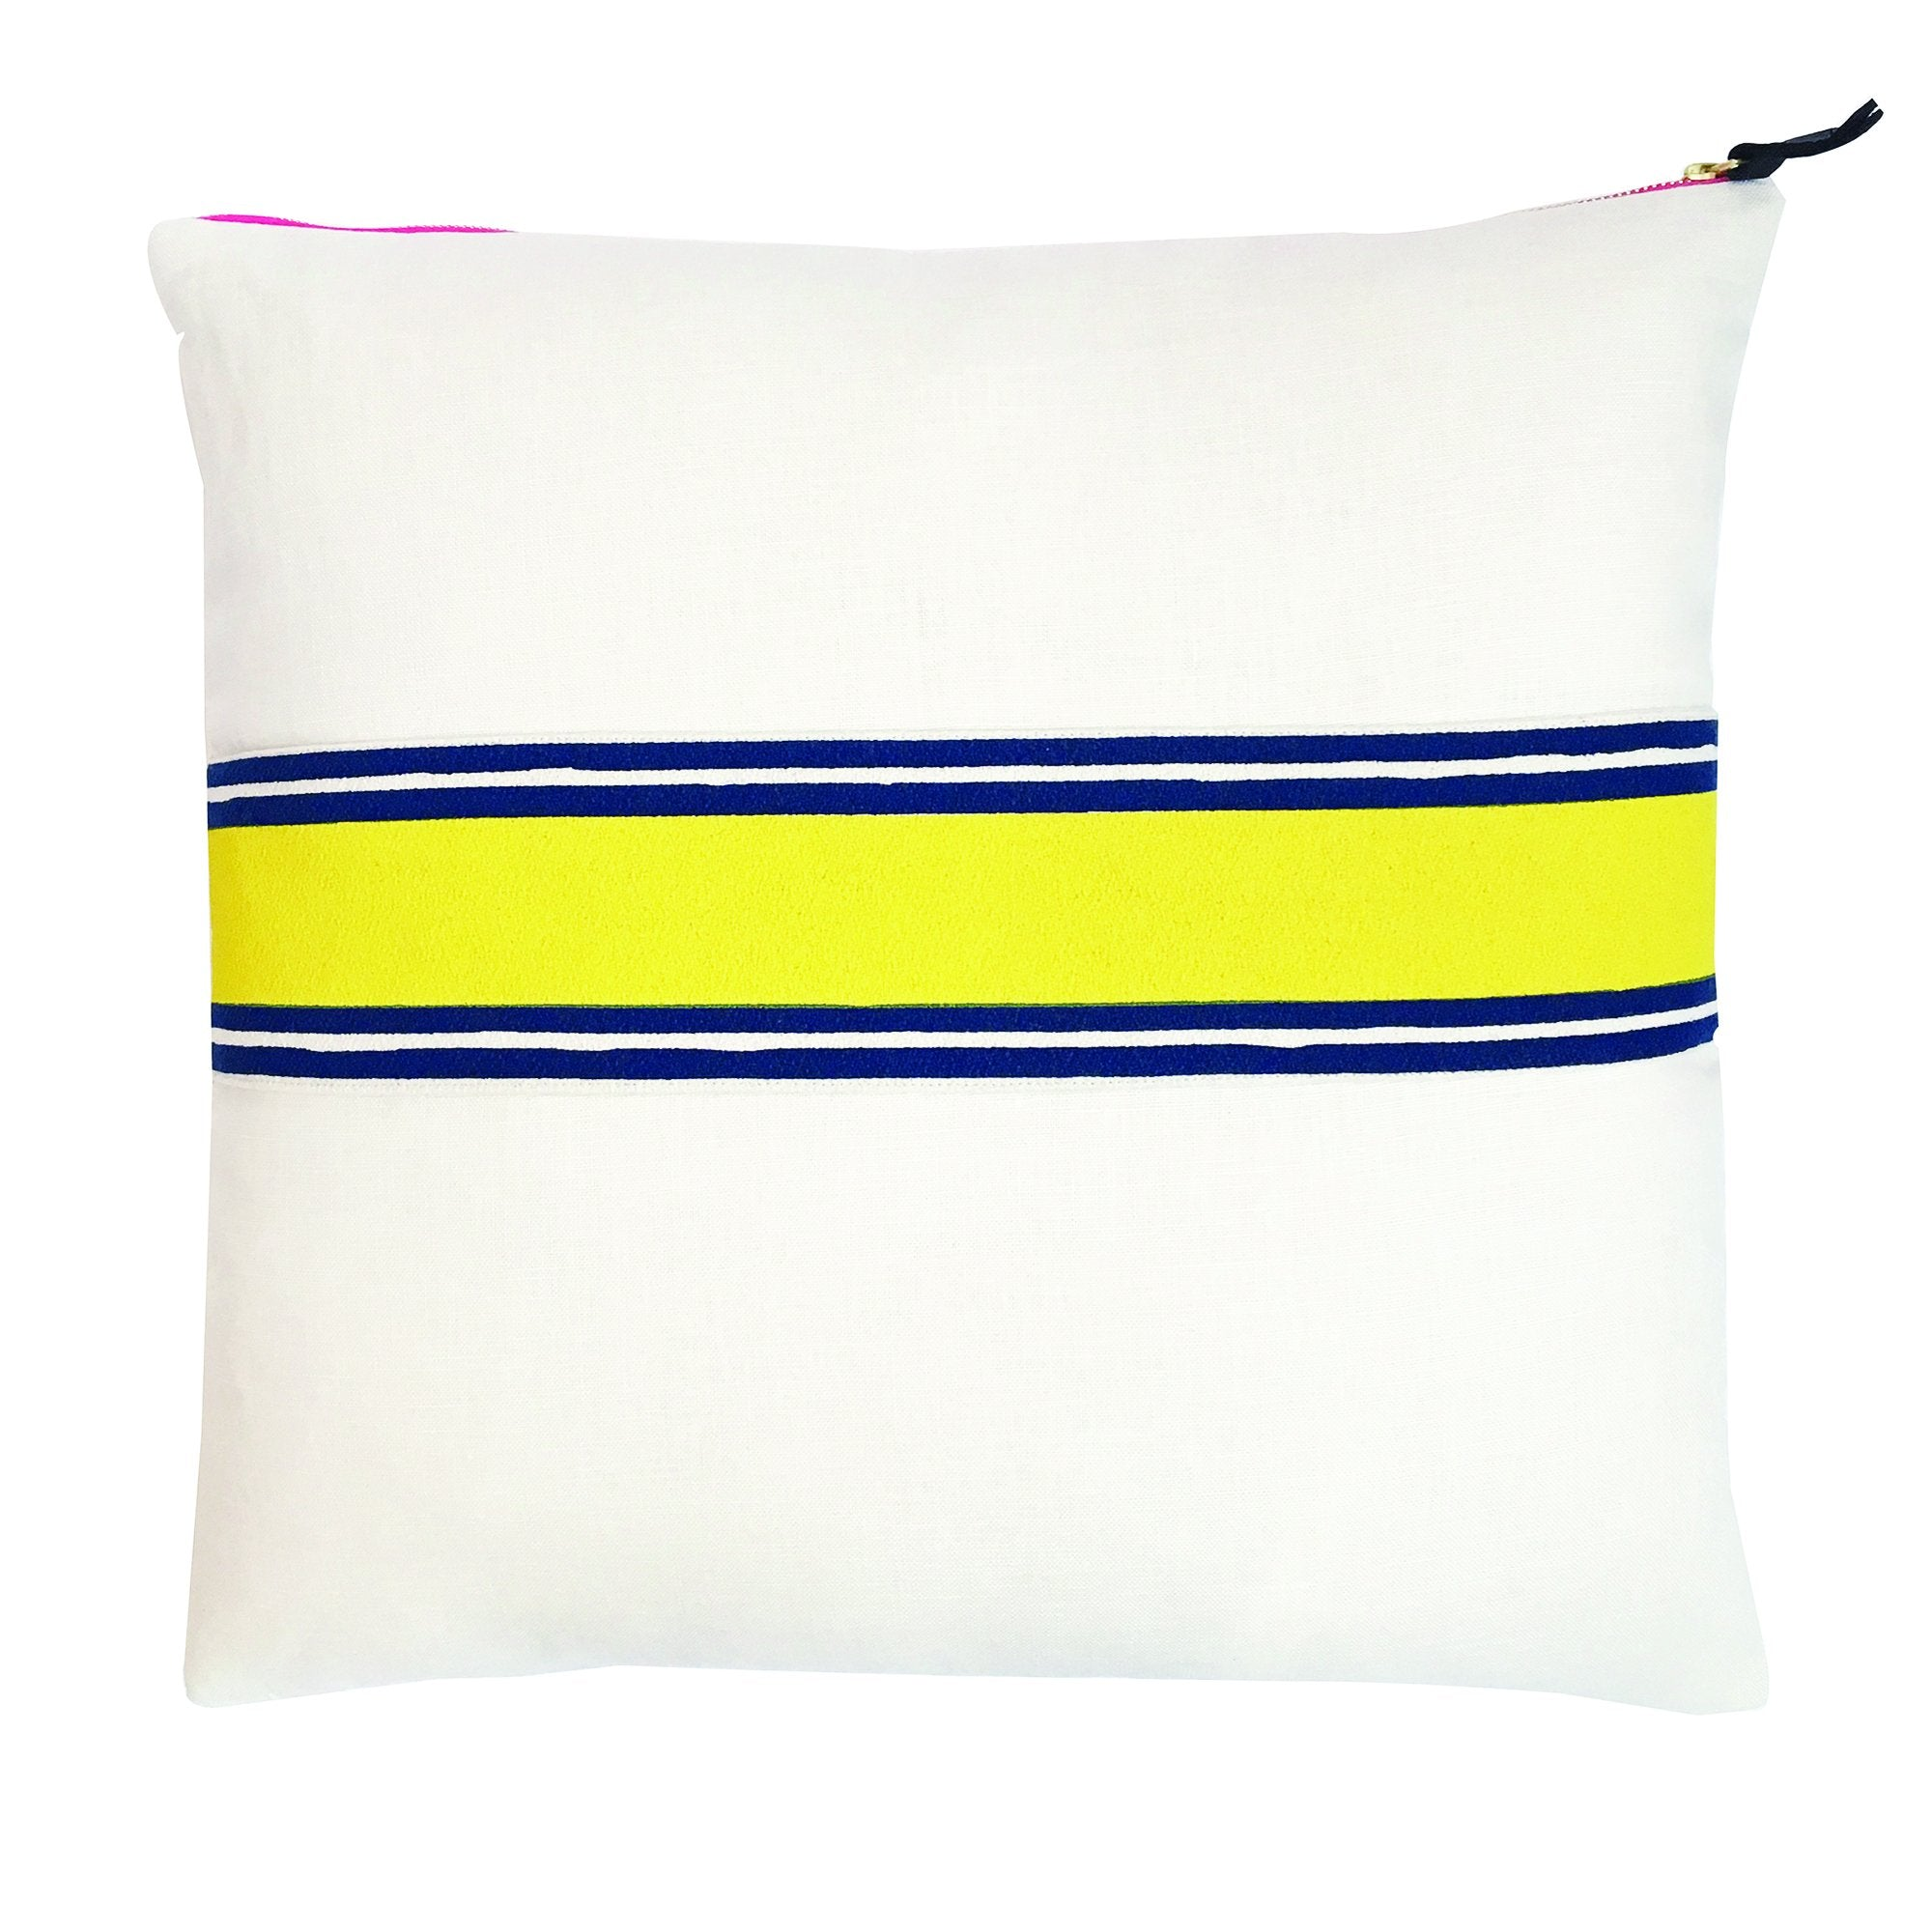 LEMON + NAVY TWO COLOR BAND ON OYSTER LINEN PILLOW